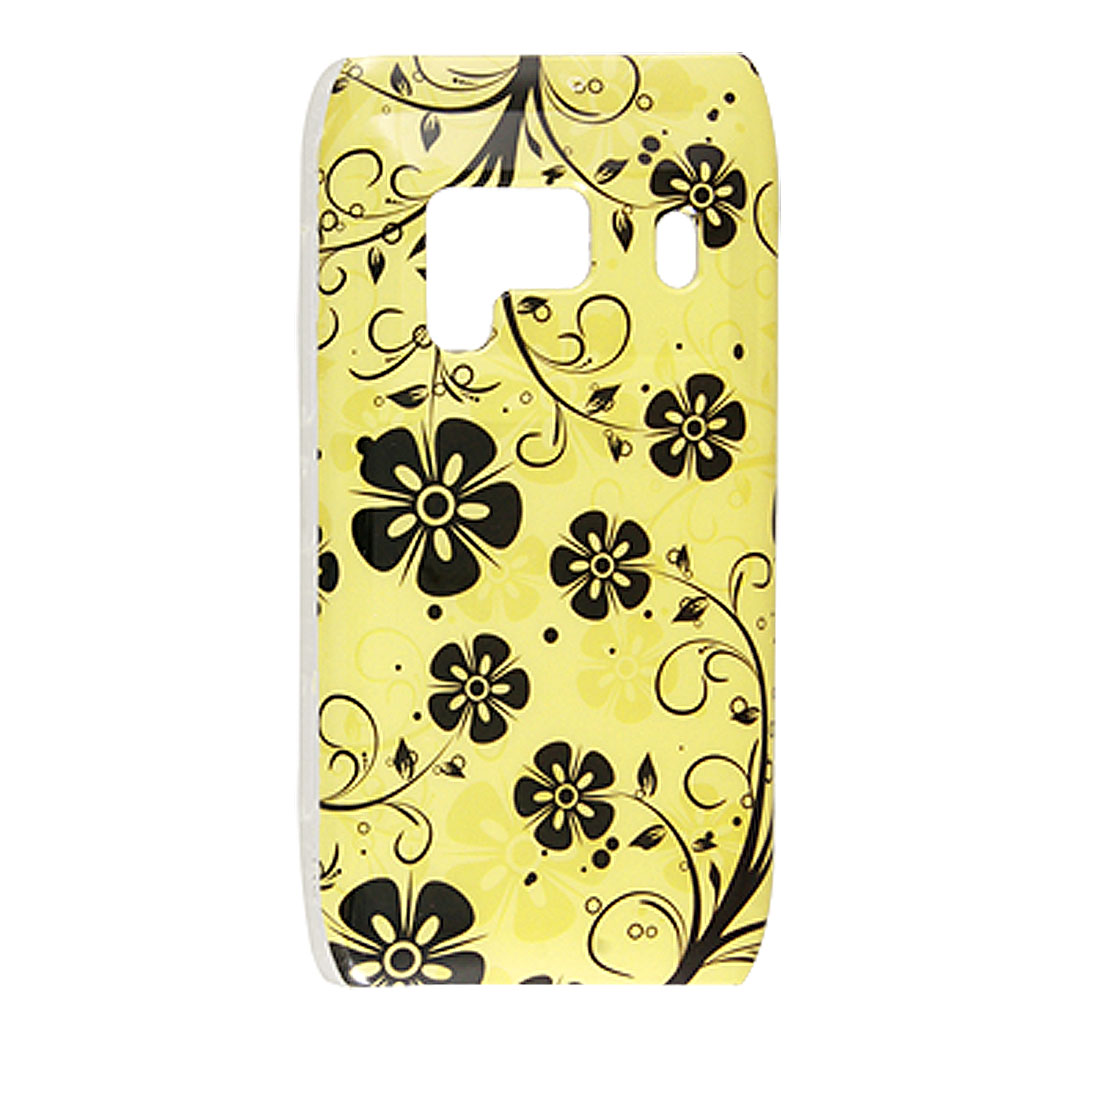 IMD Black Flower Yellow Hard Plastic Back Shell for Nokia N8